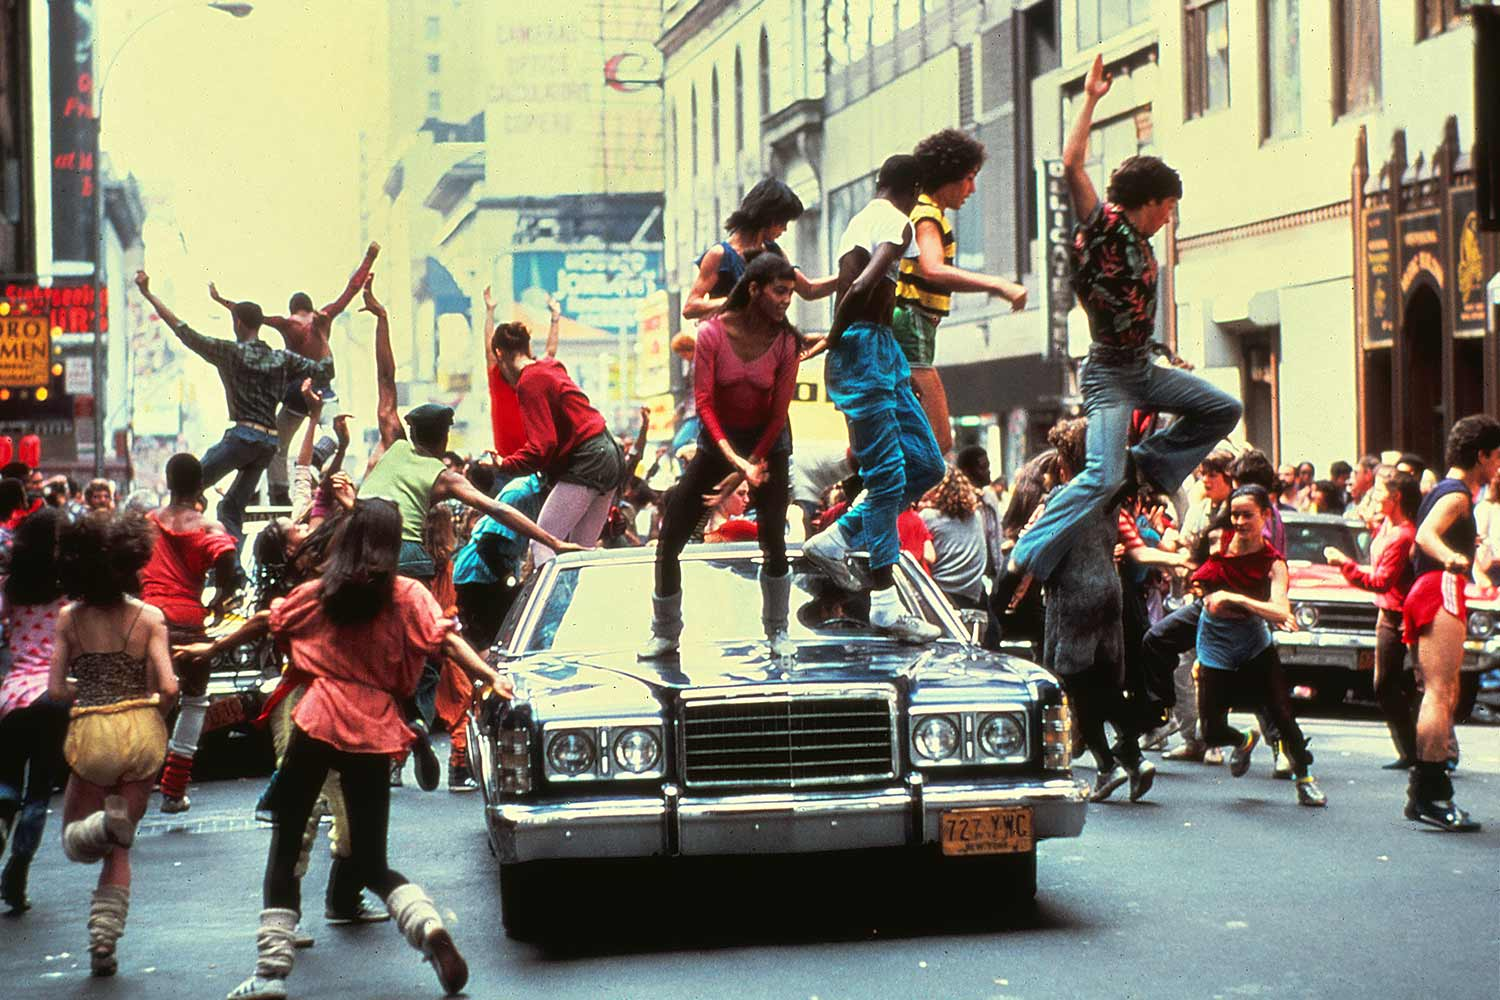 Still from the movie Fame showing people dancing on a car in New York City.